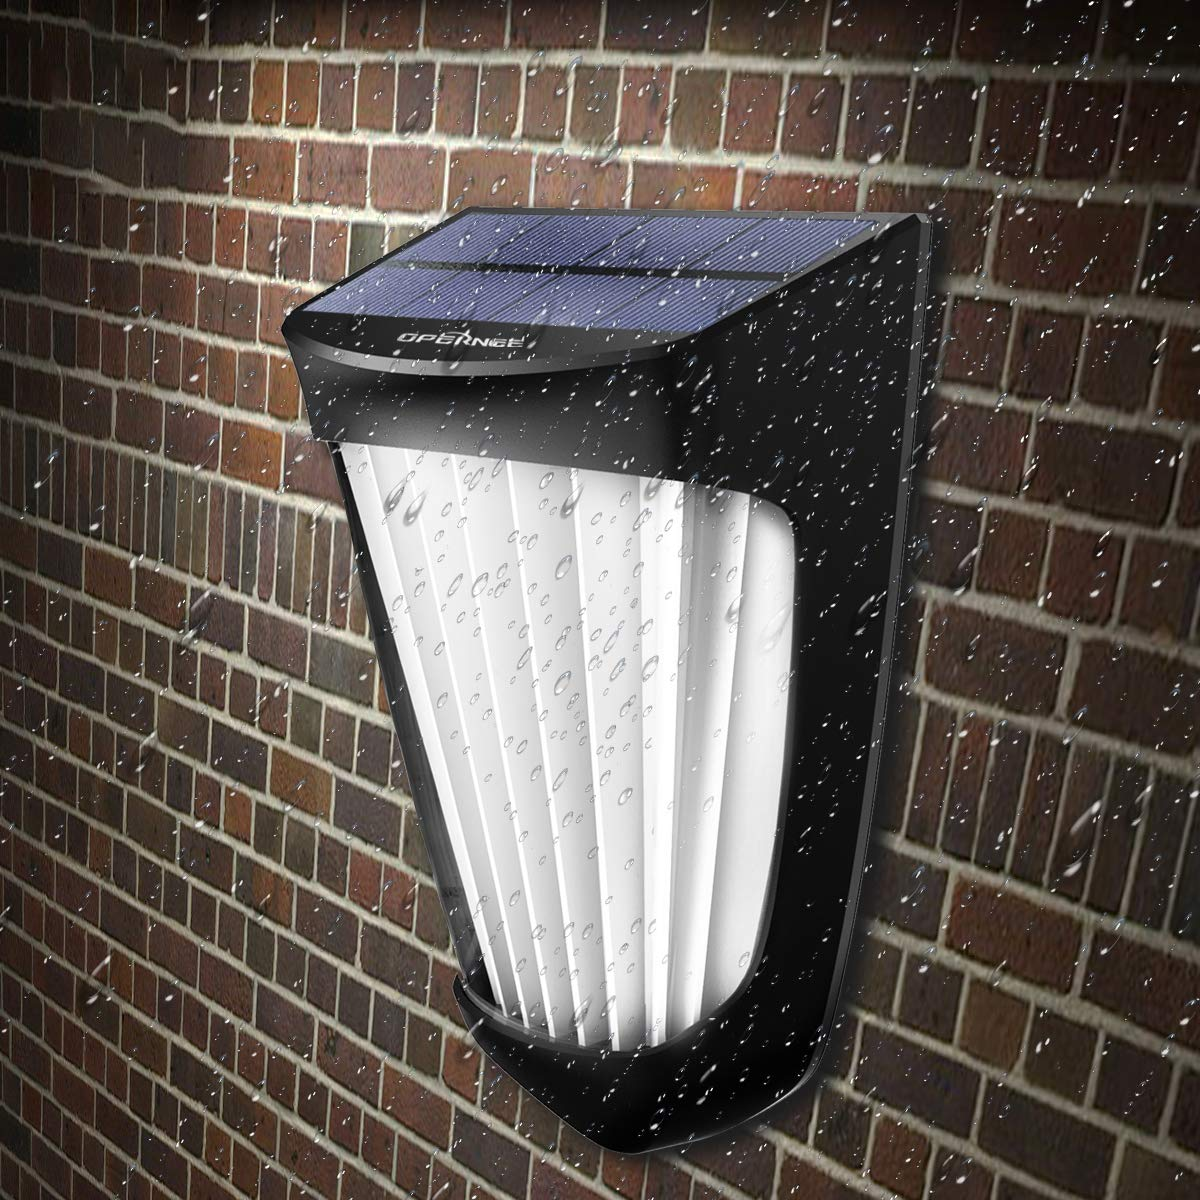 OPERNEE Solar Lights Outdoor, (2 Pack) Wireless 10 Led Solar Fence Lights Waterproof Auto ON/Off Wall Decorative Lights for Porch, Patio, Deck, Yard, Garden by OPERNEE (Image #2)